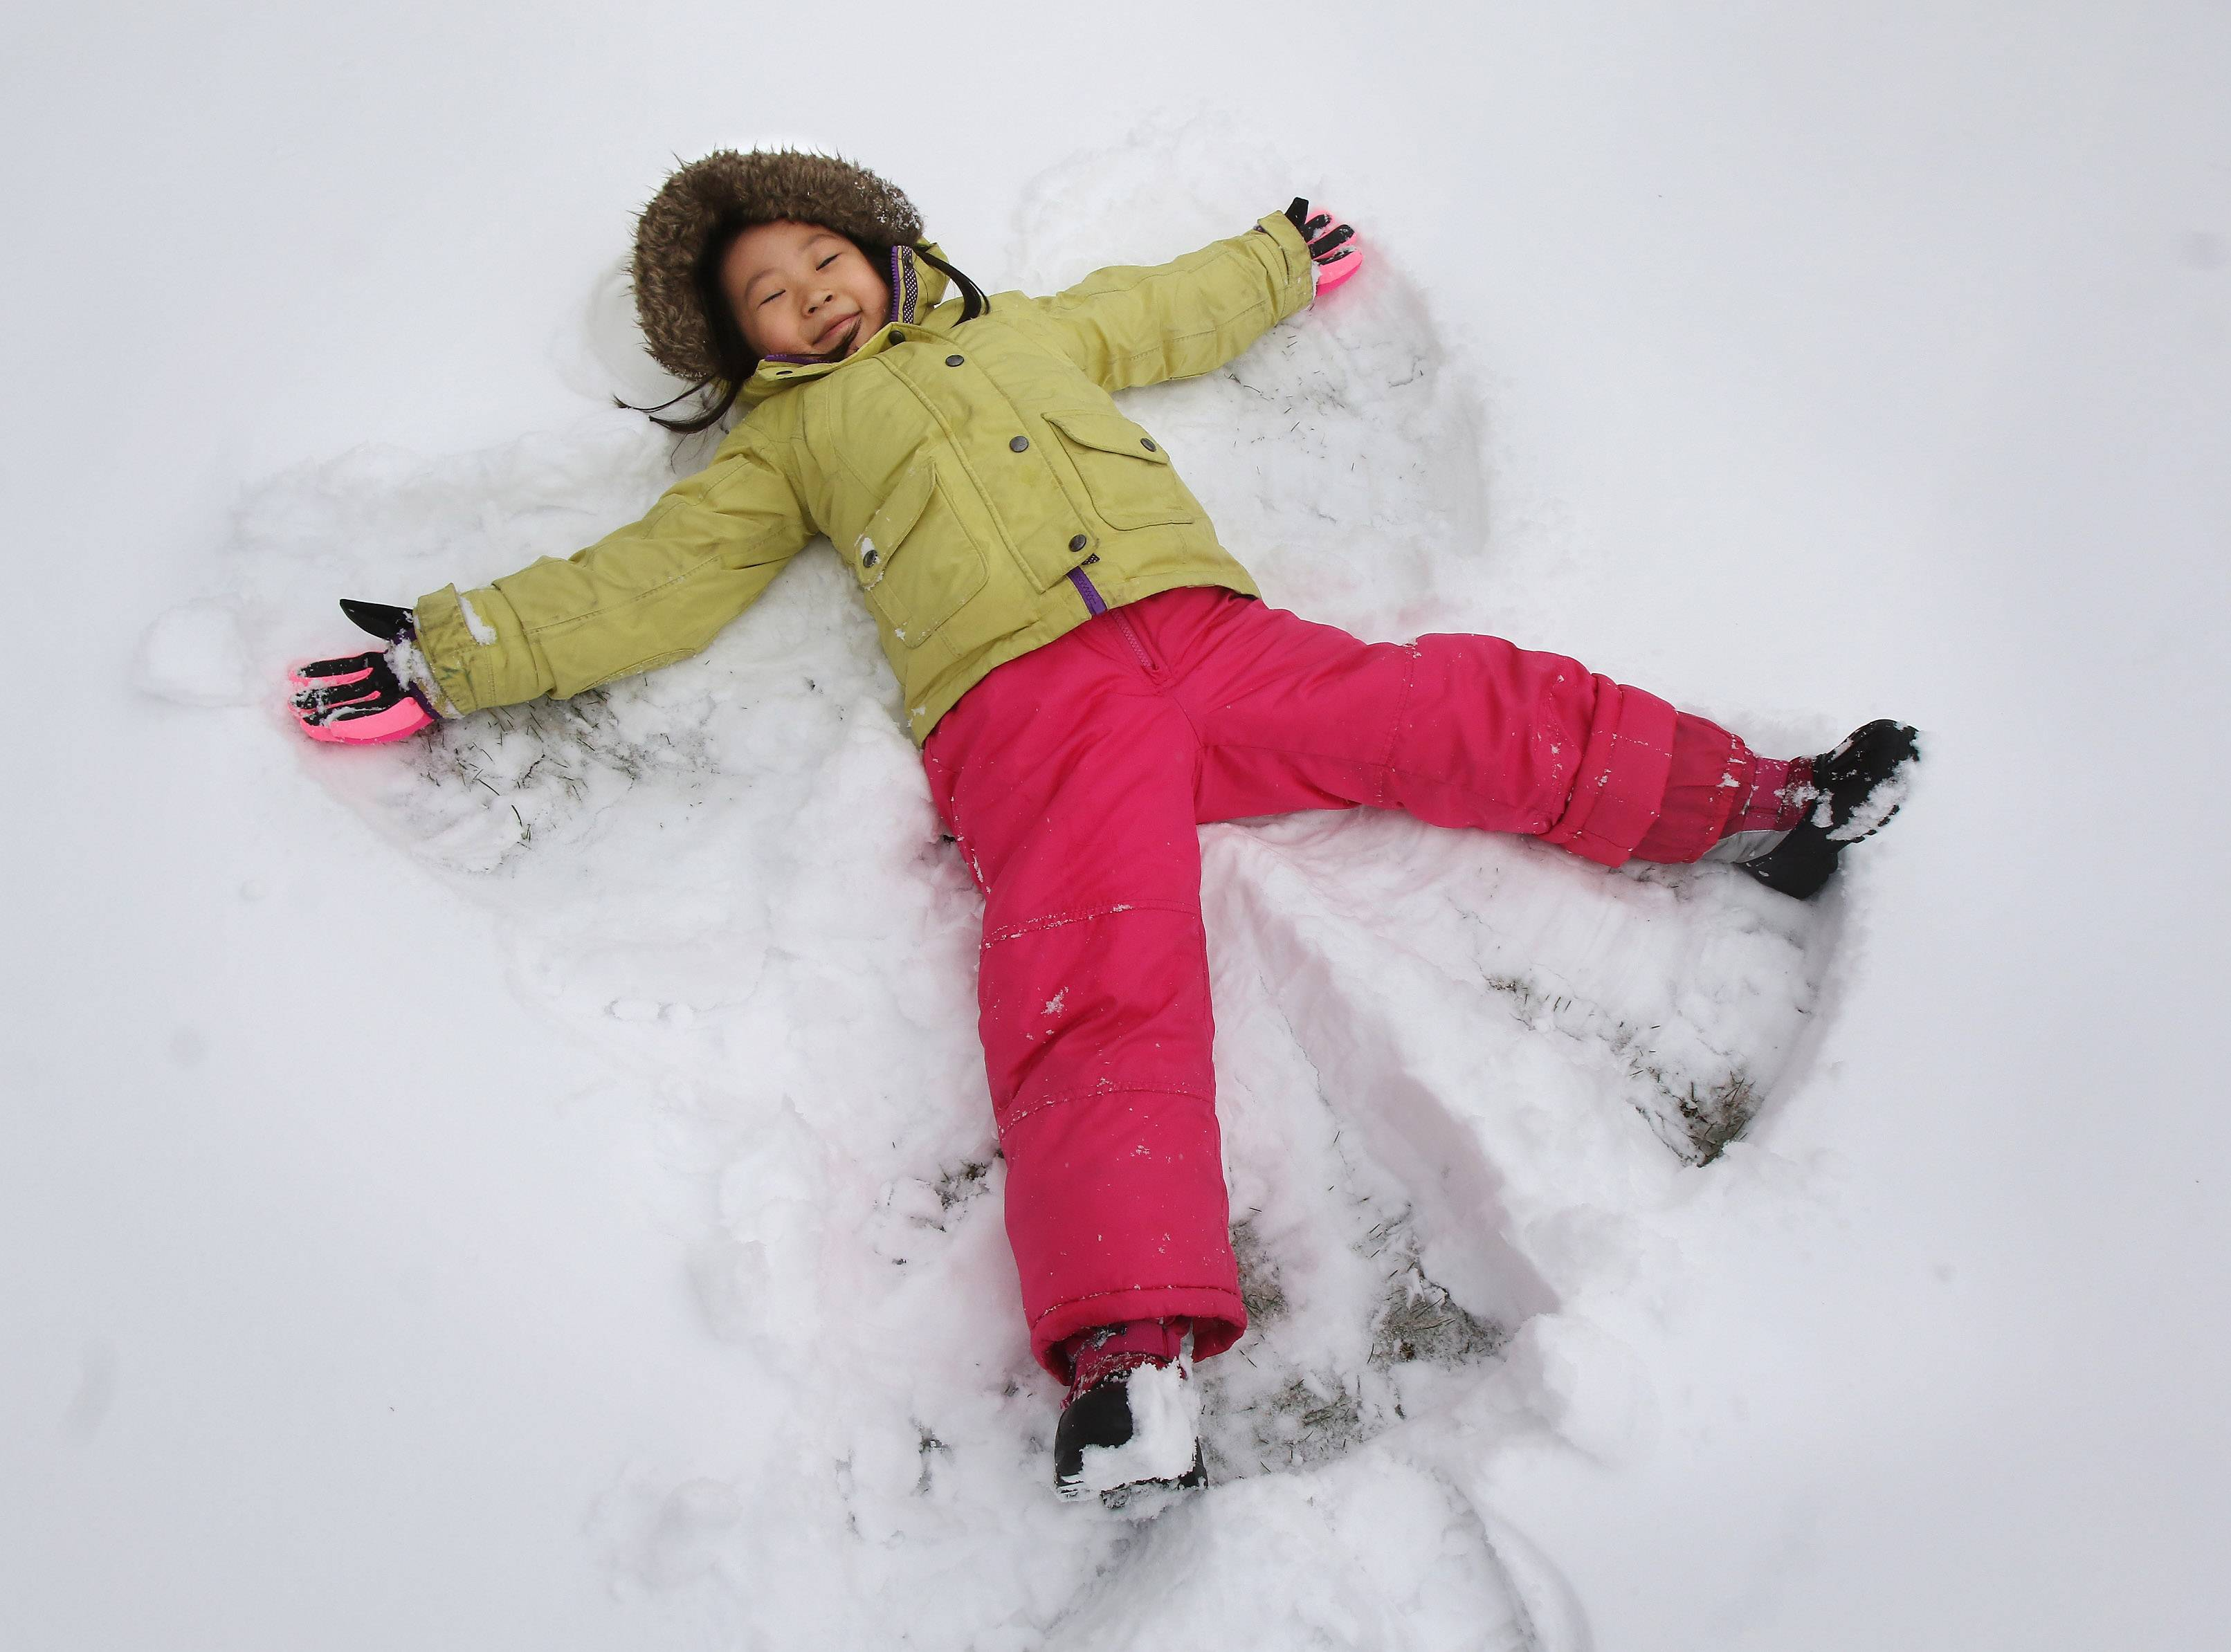 Five-year-old Claire Pyo makes a snow angel near her home in Vernon Hills on Monday after snow fell overnight. More than four inches accumulated around the area.